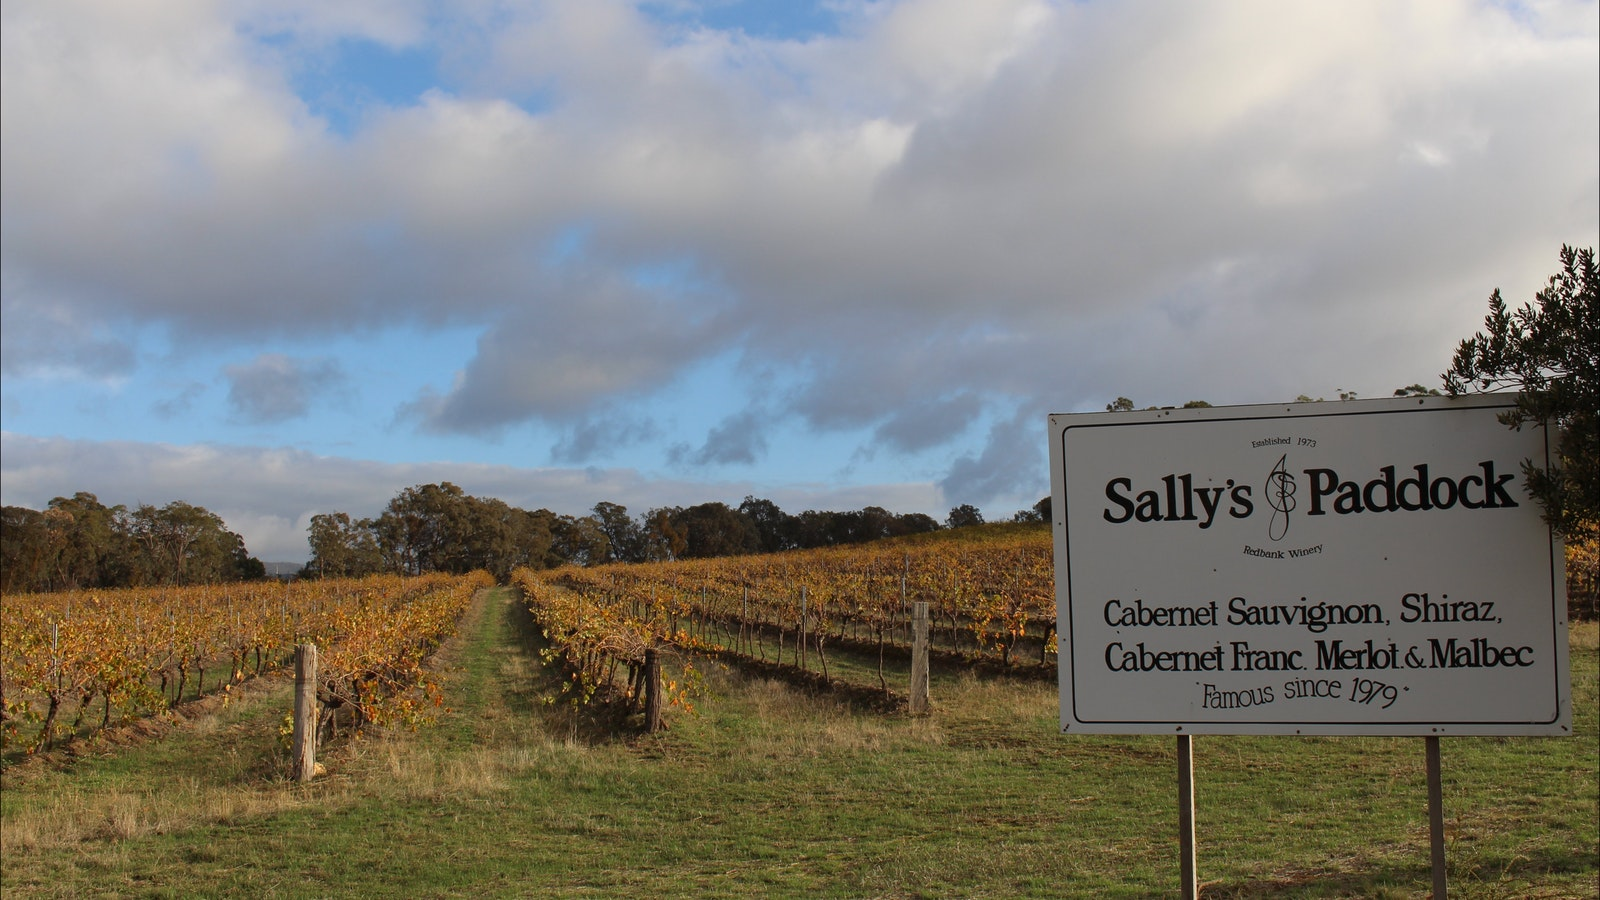 The Sally's Paddock vineyard